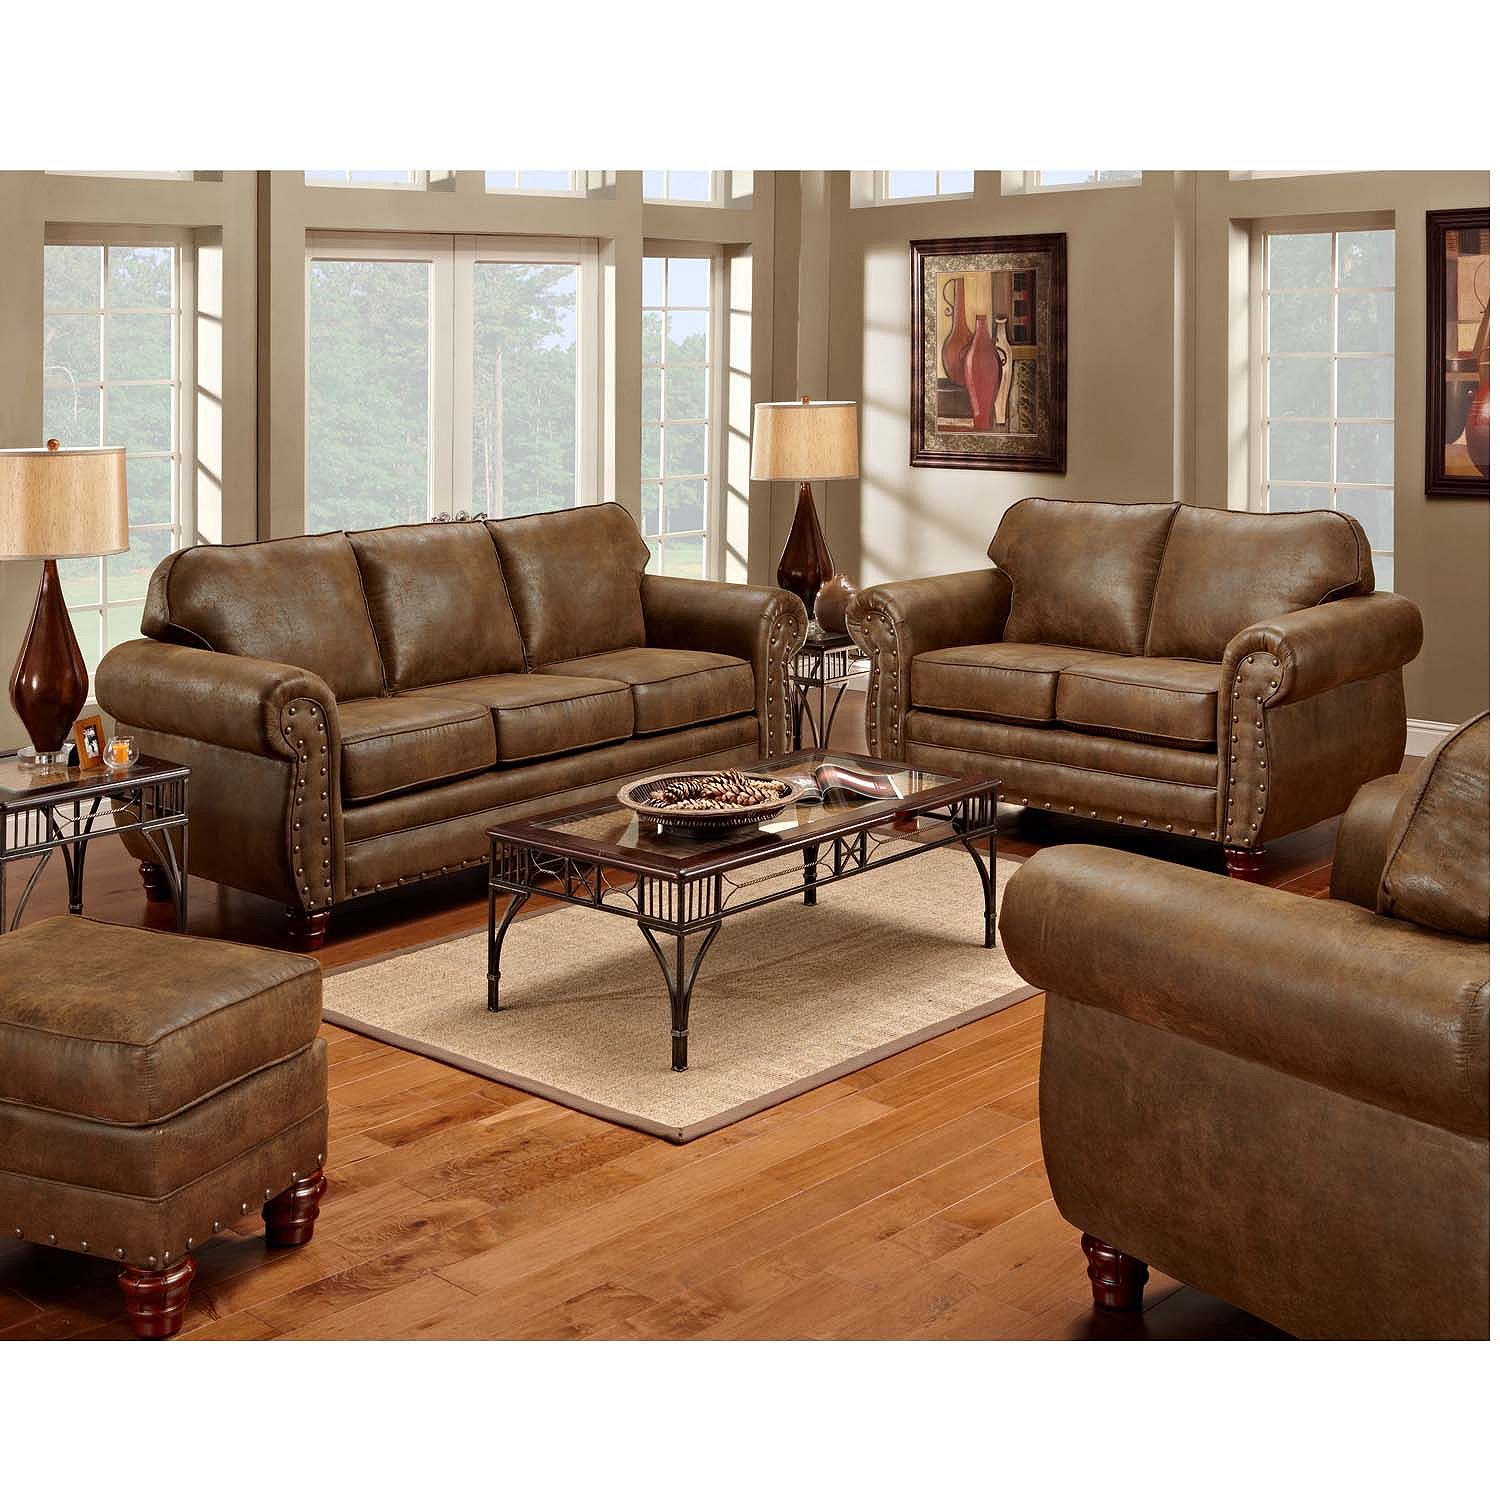 living room recliners top 4 comfortable chairs for living room homesfeed 10255